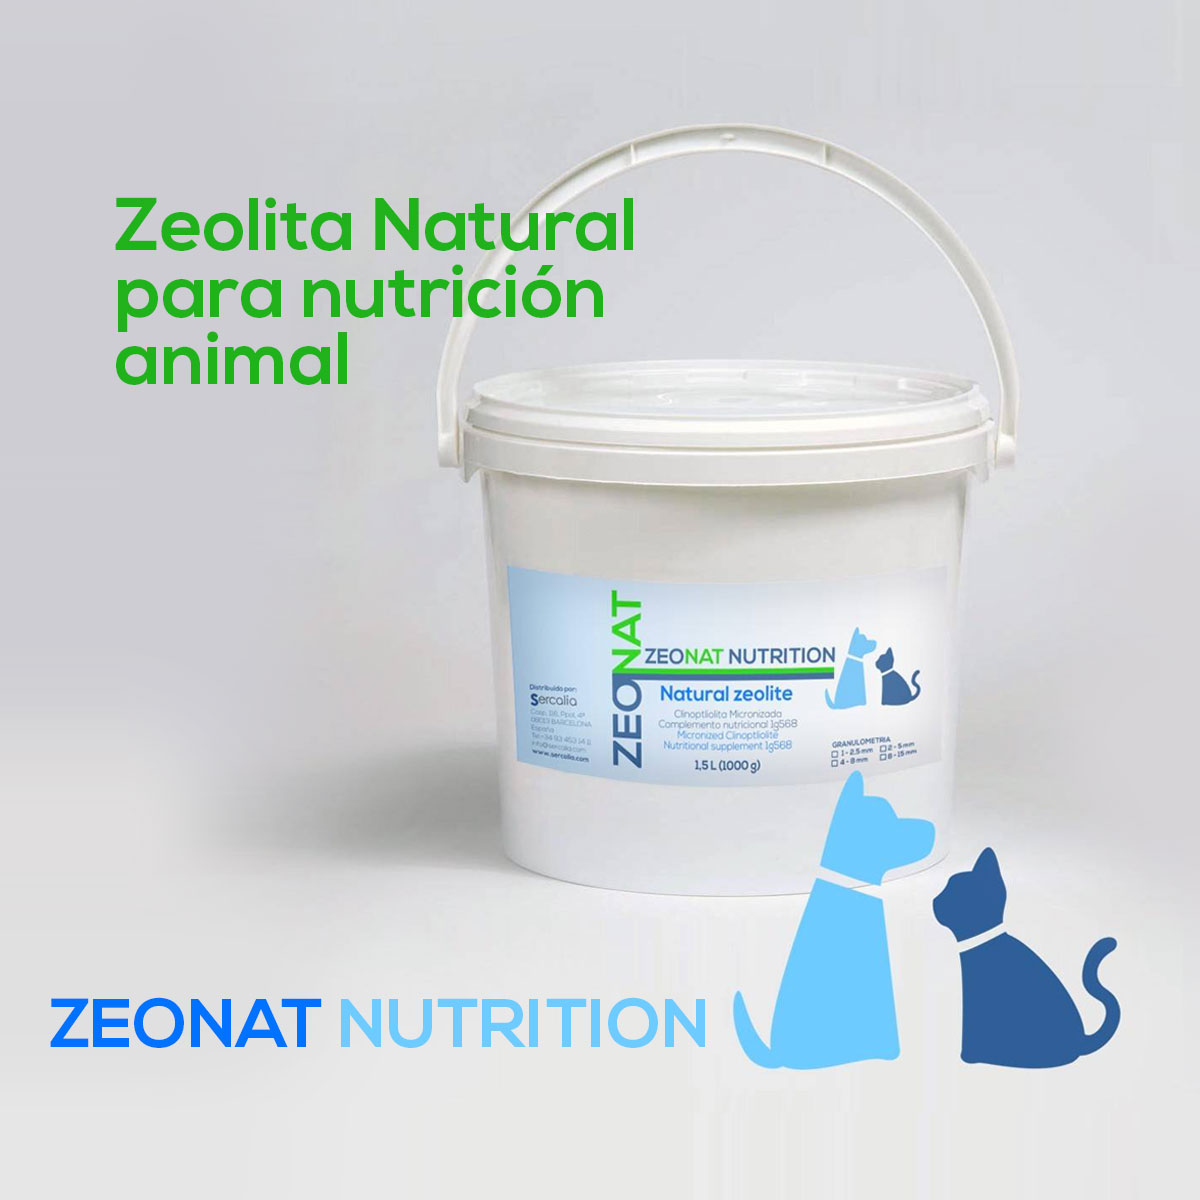 zeolita natural Zeonat Nutrition